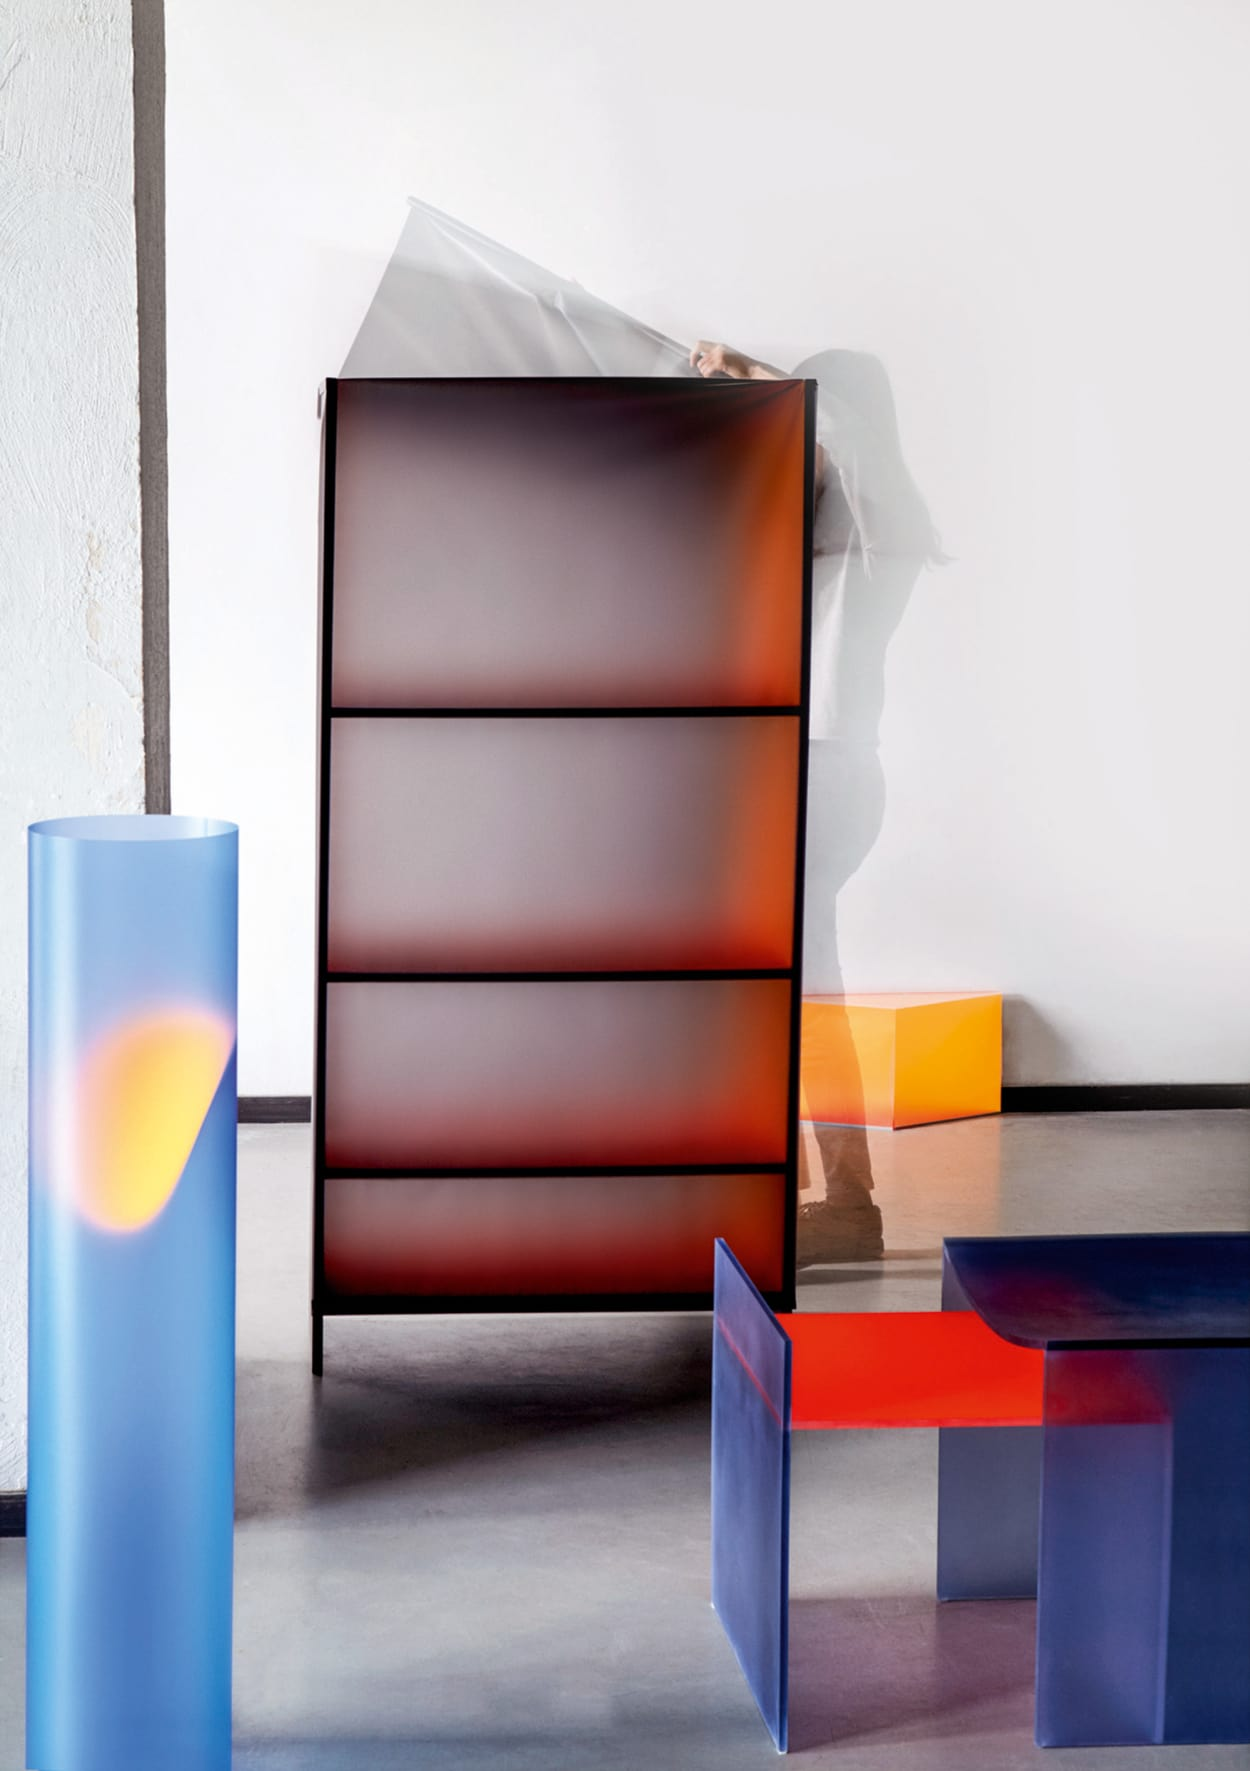 Design Academy in Eindhoven, The Light of Colour, Nai-Dan Chang